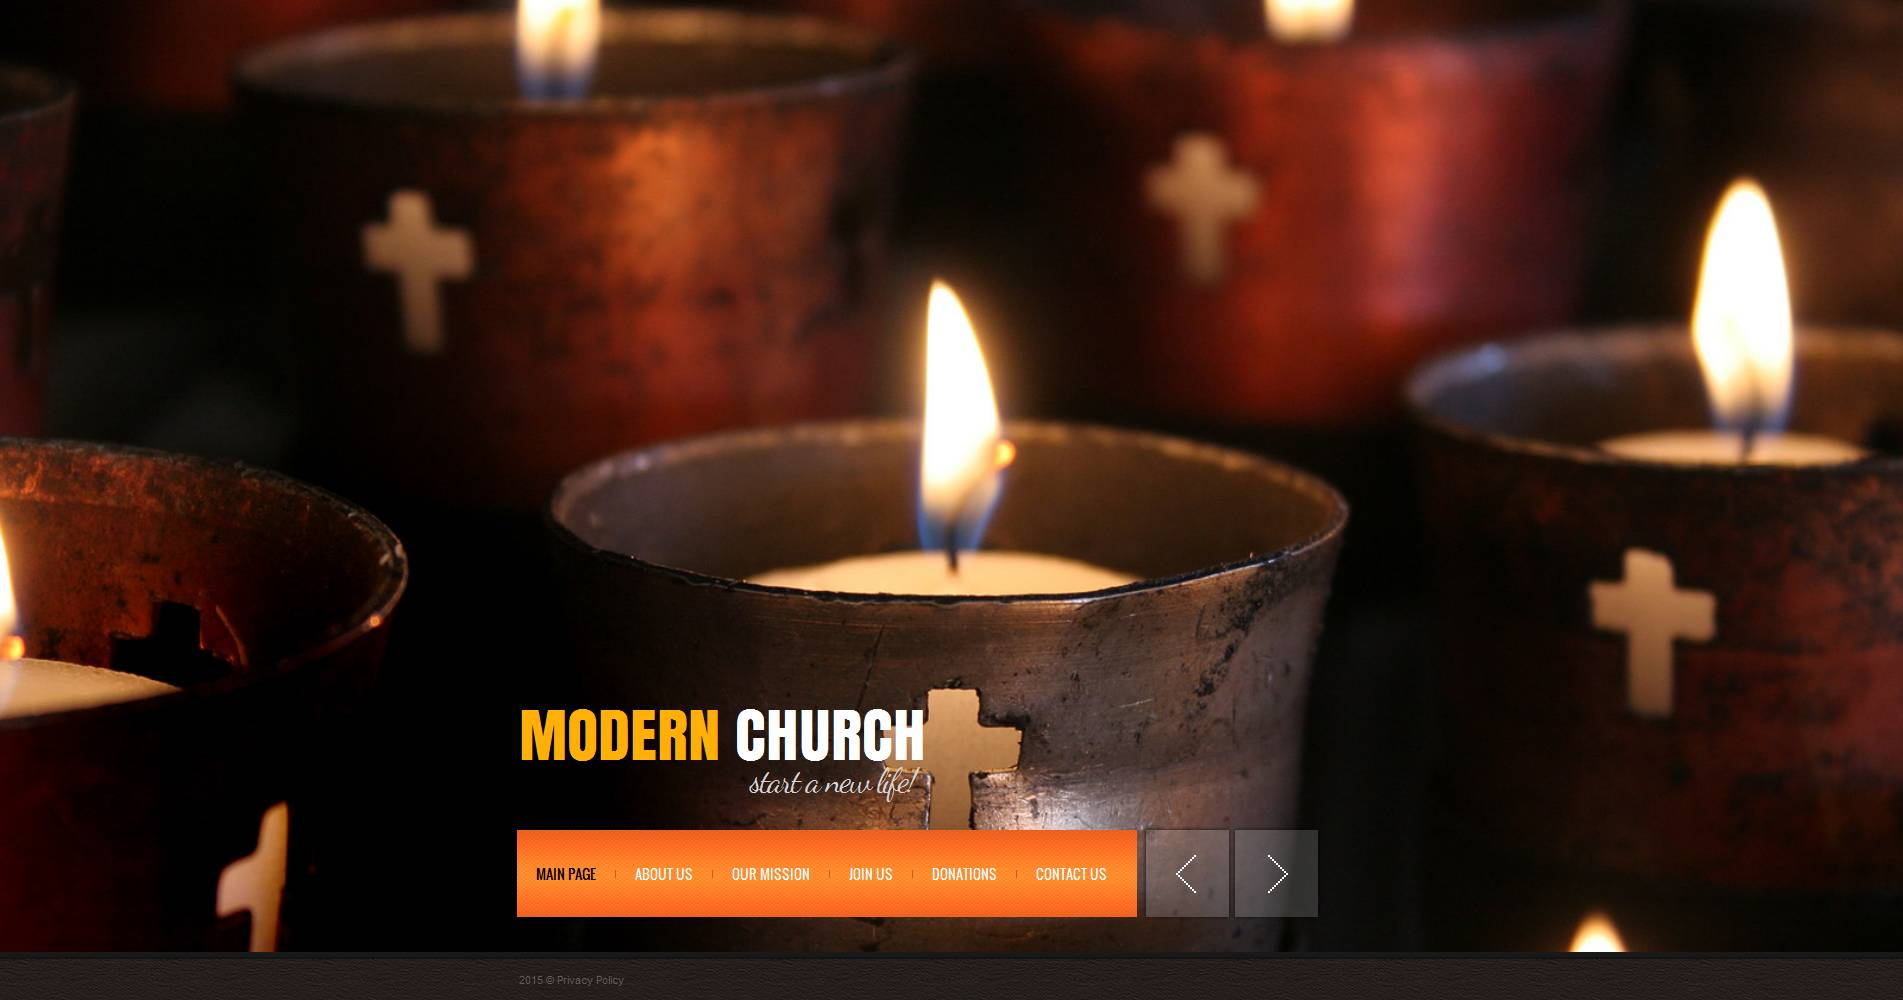 The Modern Church Moto CMS HTML Design 53620, one of the best Moto CMS HTML templates of its kind (religious), also known as modern church Moto CMS HTML template, religious Moto CMS HTML template, religion Moto CMS HTML template, God family care Moto CMS HTML template, education Moto CMS HTML template, Bible mission Moto CMS HTML template, community Moto CMS HTML template, sermon Moto CMS HTML template, priest Moto CMS HTML template, clergyman Moto CMS HTML template, choir Moto CMS HTML template, health Moto CMS HTML template, Sunday school Moto CMS HTML template, archive Moto CMS HTML template, credence Moto CMS HTML template, faith Moto CMS HTML template, belief in God kindness Moto CMS HTML template, confession Moto CMS HTML template, homily Moto CMS HTML template, sermon Moto CMS HTML template, help Moto CMS HTML template, support Moto CMS HTML template, Christian catholic Moto CMS HTML template, prayer and related with modern church, religious, religion, God family care, education, Bible mission, community, sermon, priest, clergyman, choir, health, Sunday school, archive, credence, faith, belief in God kindness, confession, homily, sermon, help, support, Christian catholic, prayer, etc.